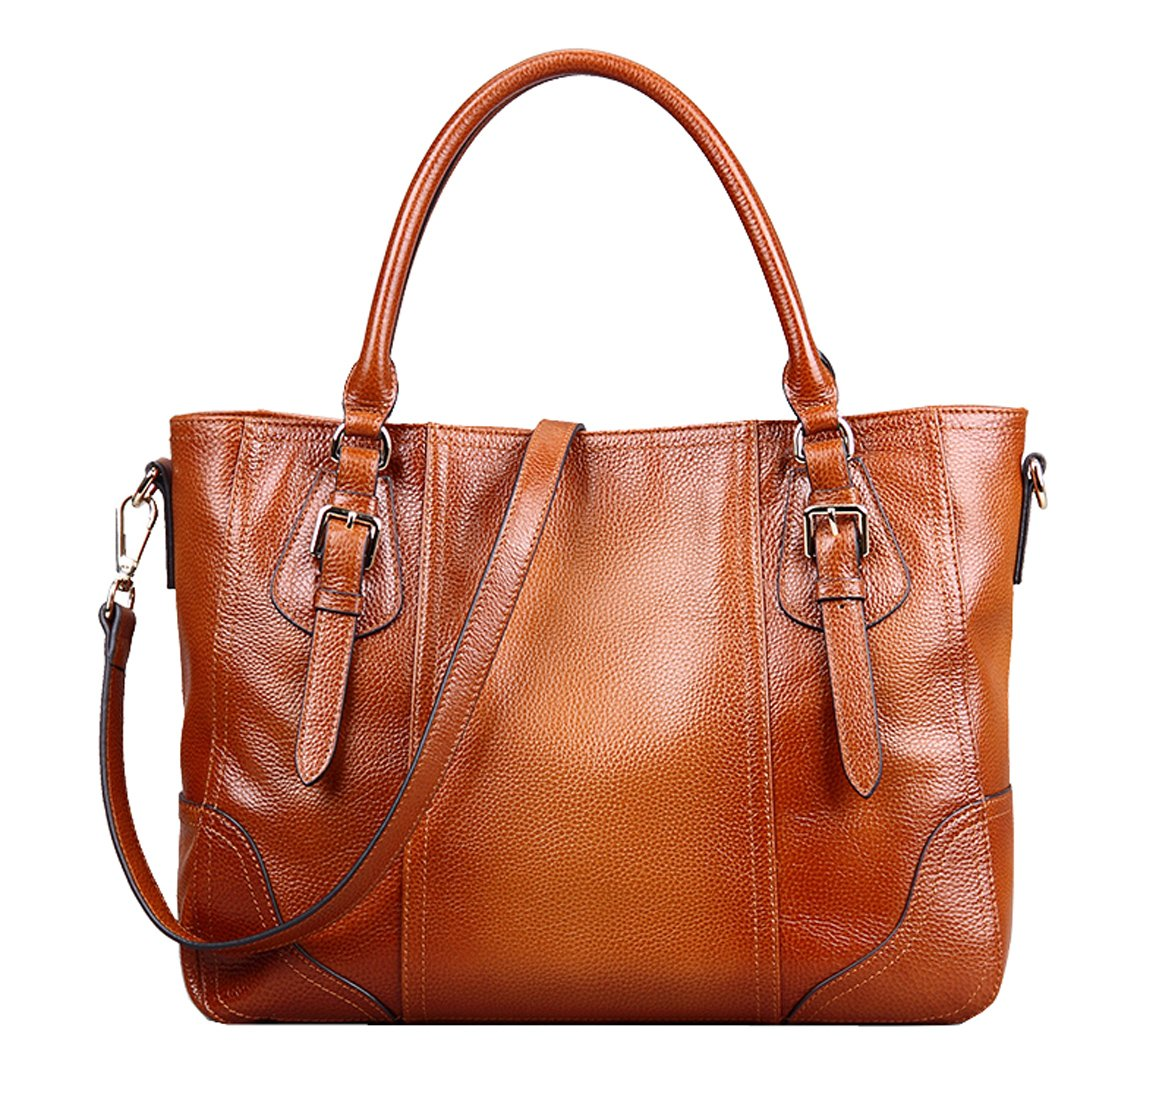 SAIERLONG Women's European And American Style Red brown First Layer Of Leather Top-handle Tote Shoulder Messenger Bag Cross Body Purse Vintage Handbag